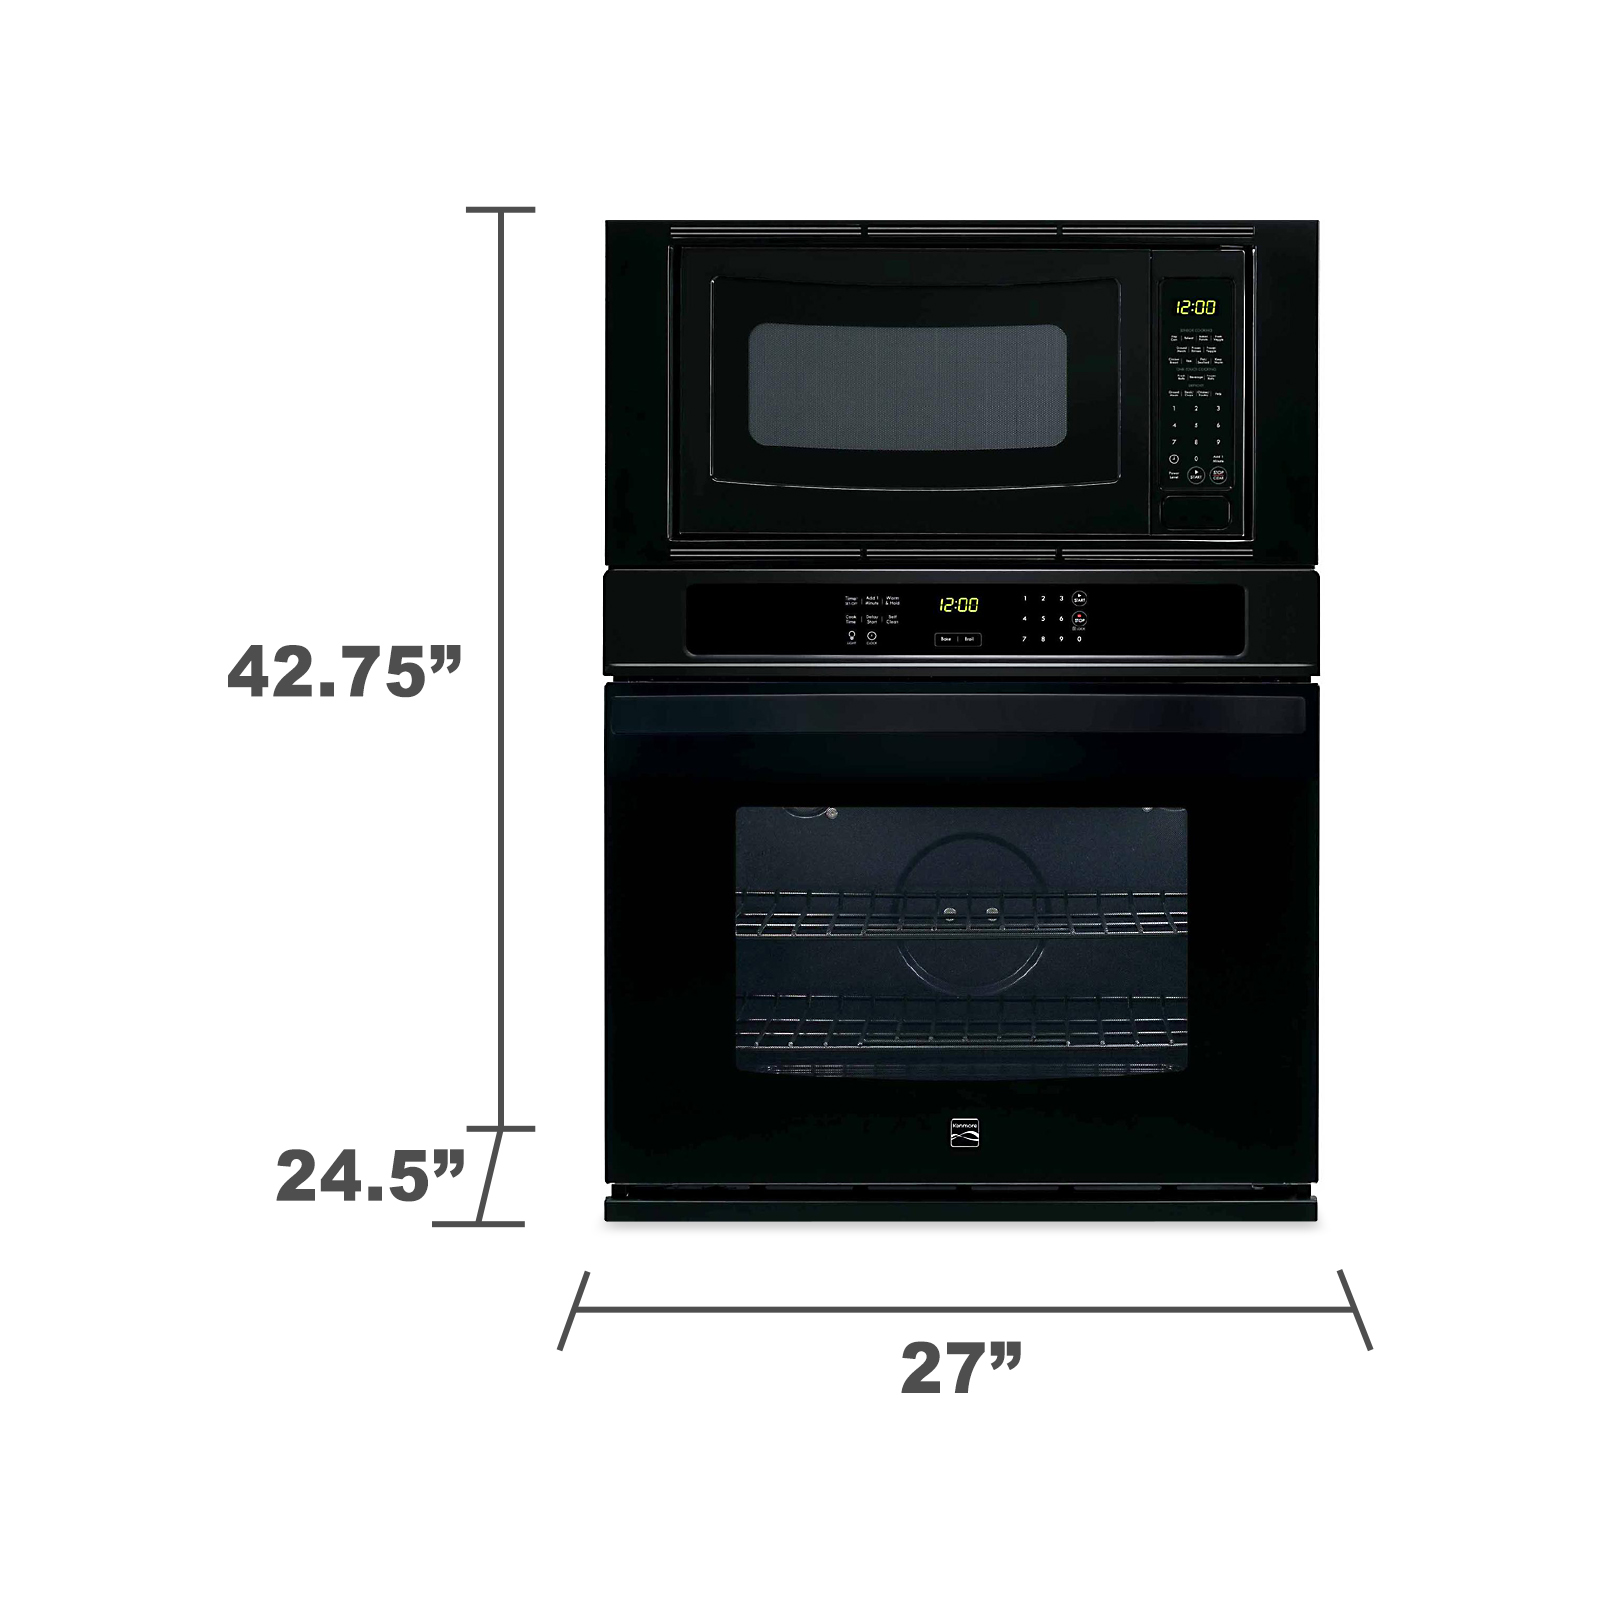 "Kenmore 49609 27"" Electric Combination Wall Oven - Black"